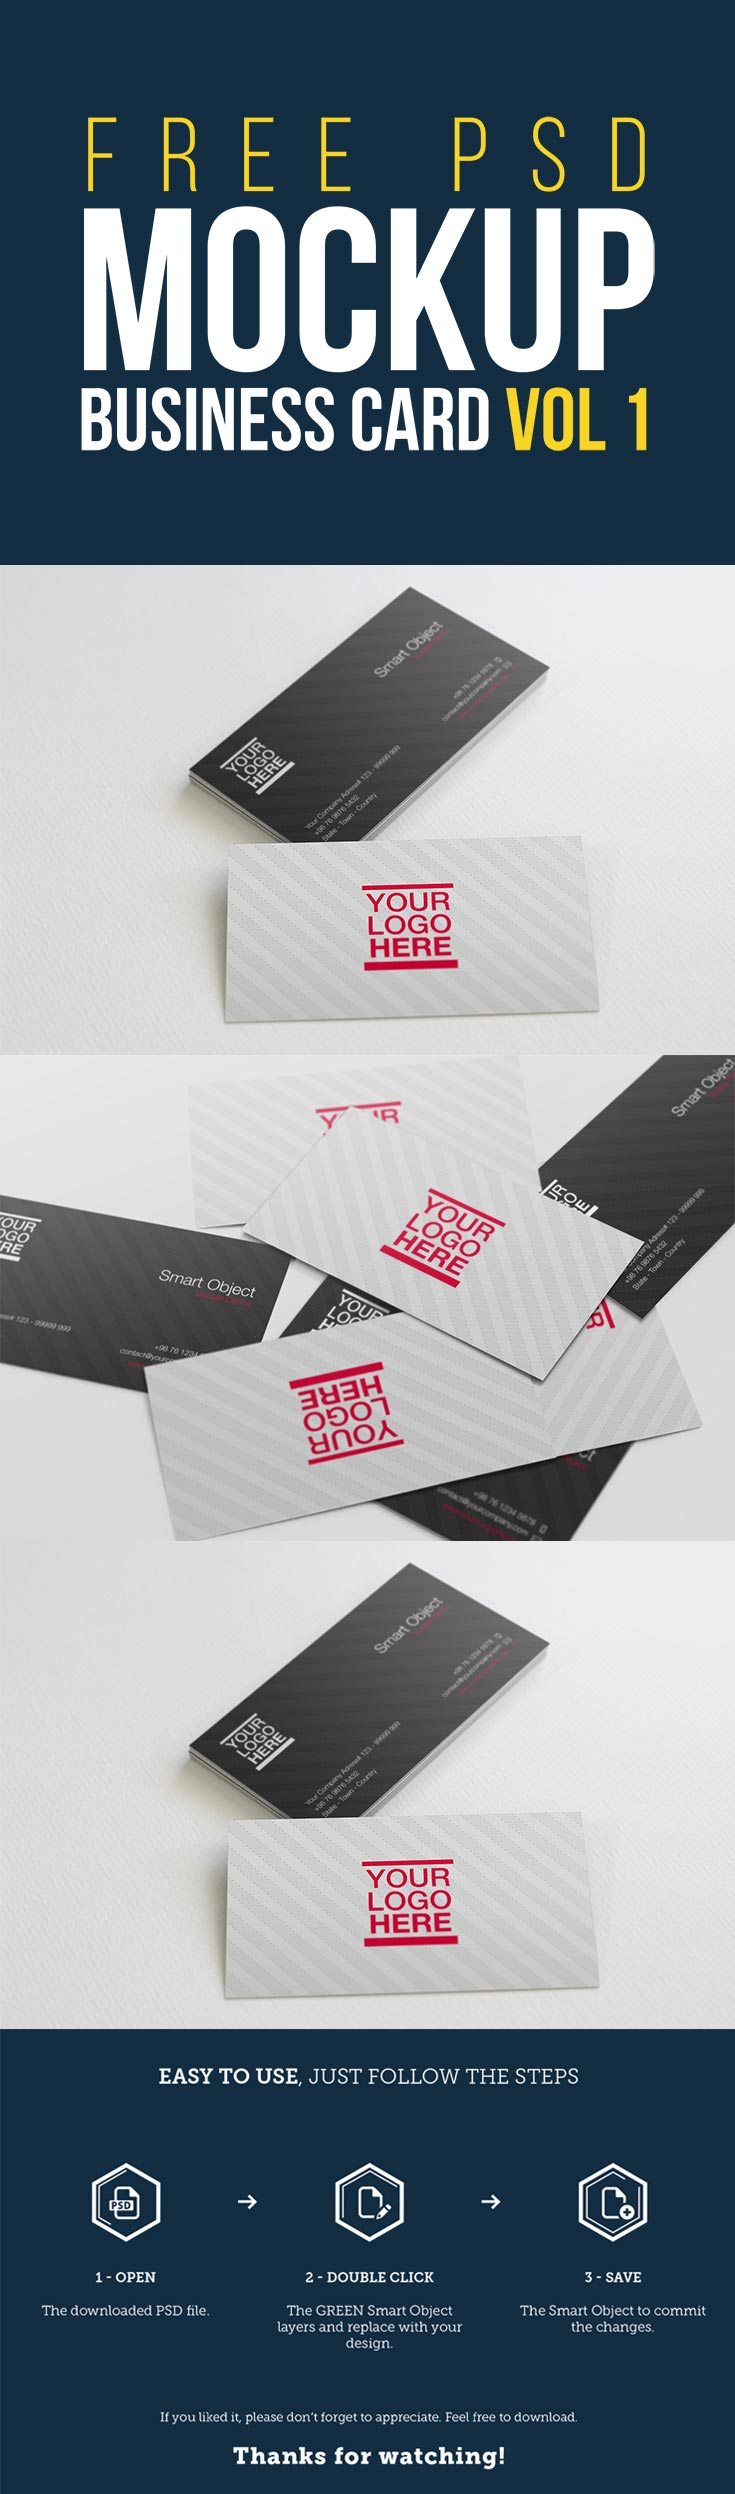 Blog grid page 48 of 147 free business cards mockups vol 1 reheart Gallery